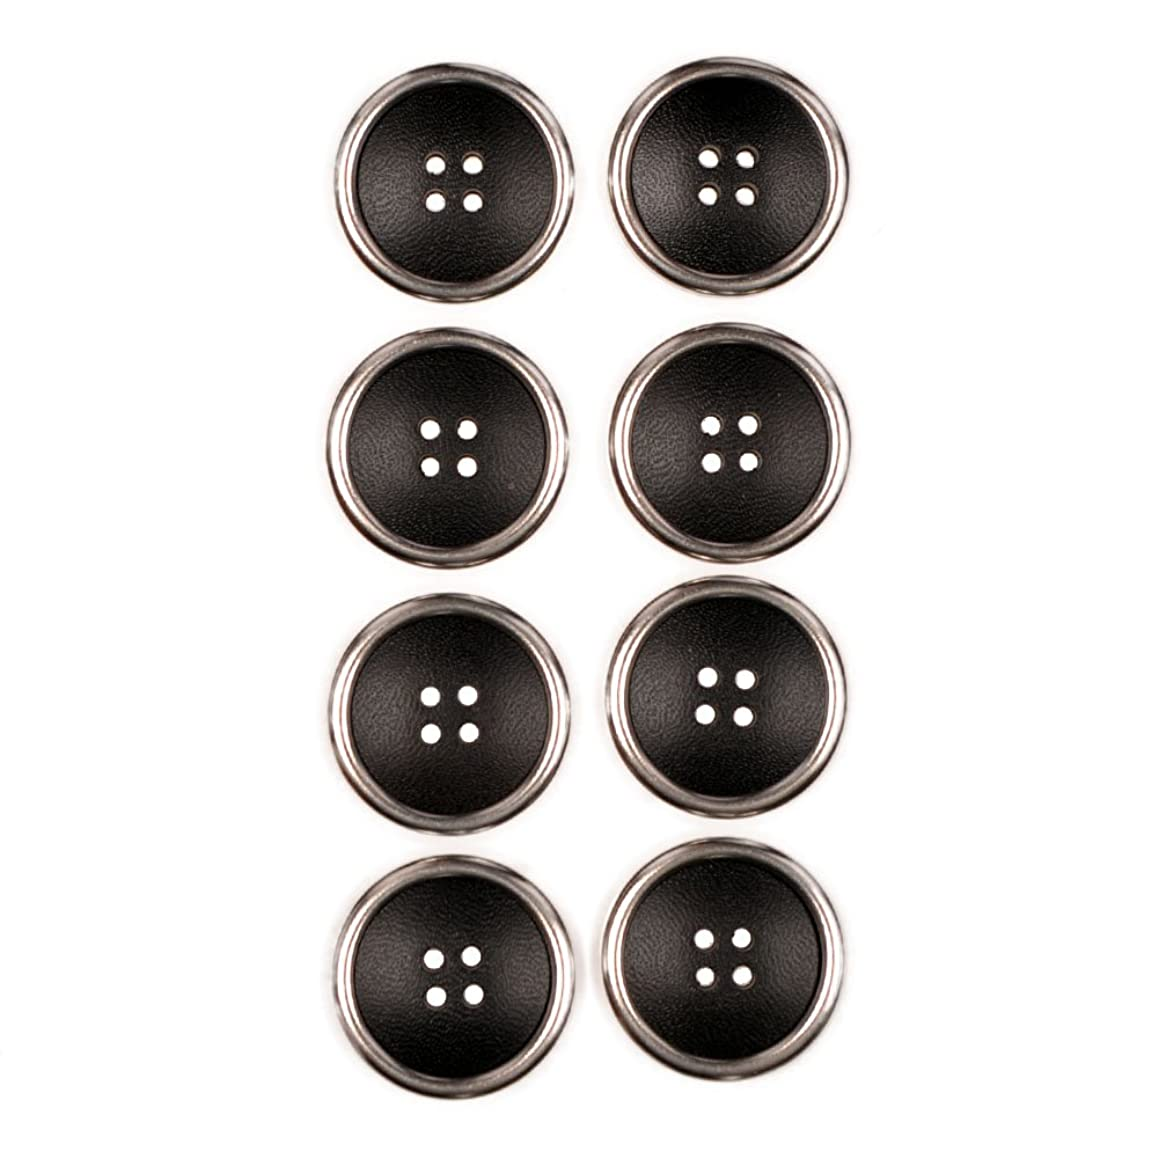 Combination (2 Piece) Button 4 Hole Leather Look With Metal Rim Black / NIkel 40 Line